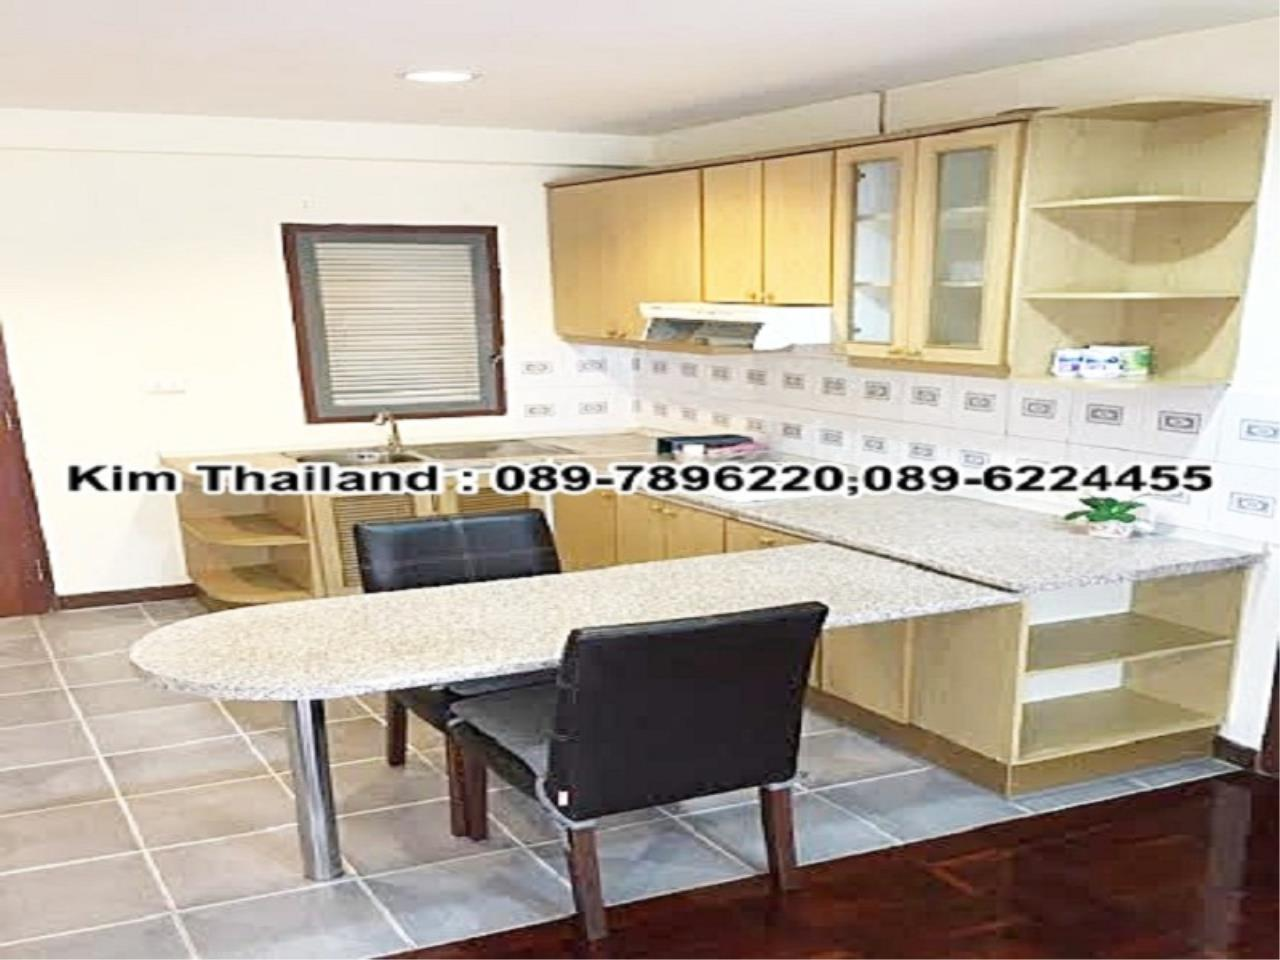 BKKcondorental Agency's For rent, Condo Saranjai Mansion. Area 63 sq.m. 1 bedroom. Rent 20,000baht/month 4